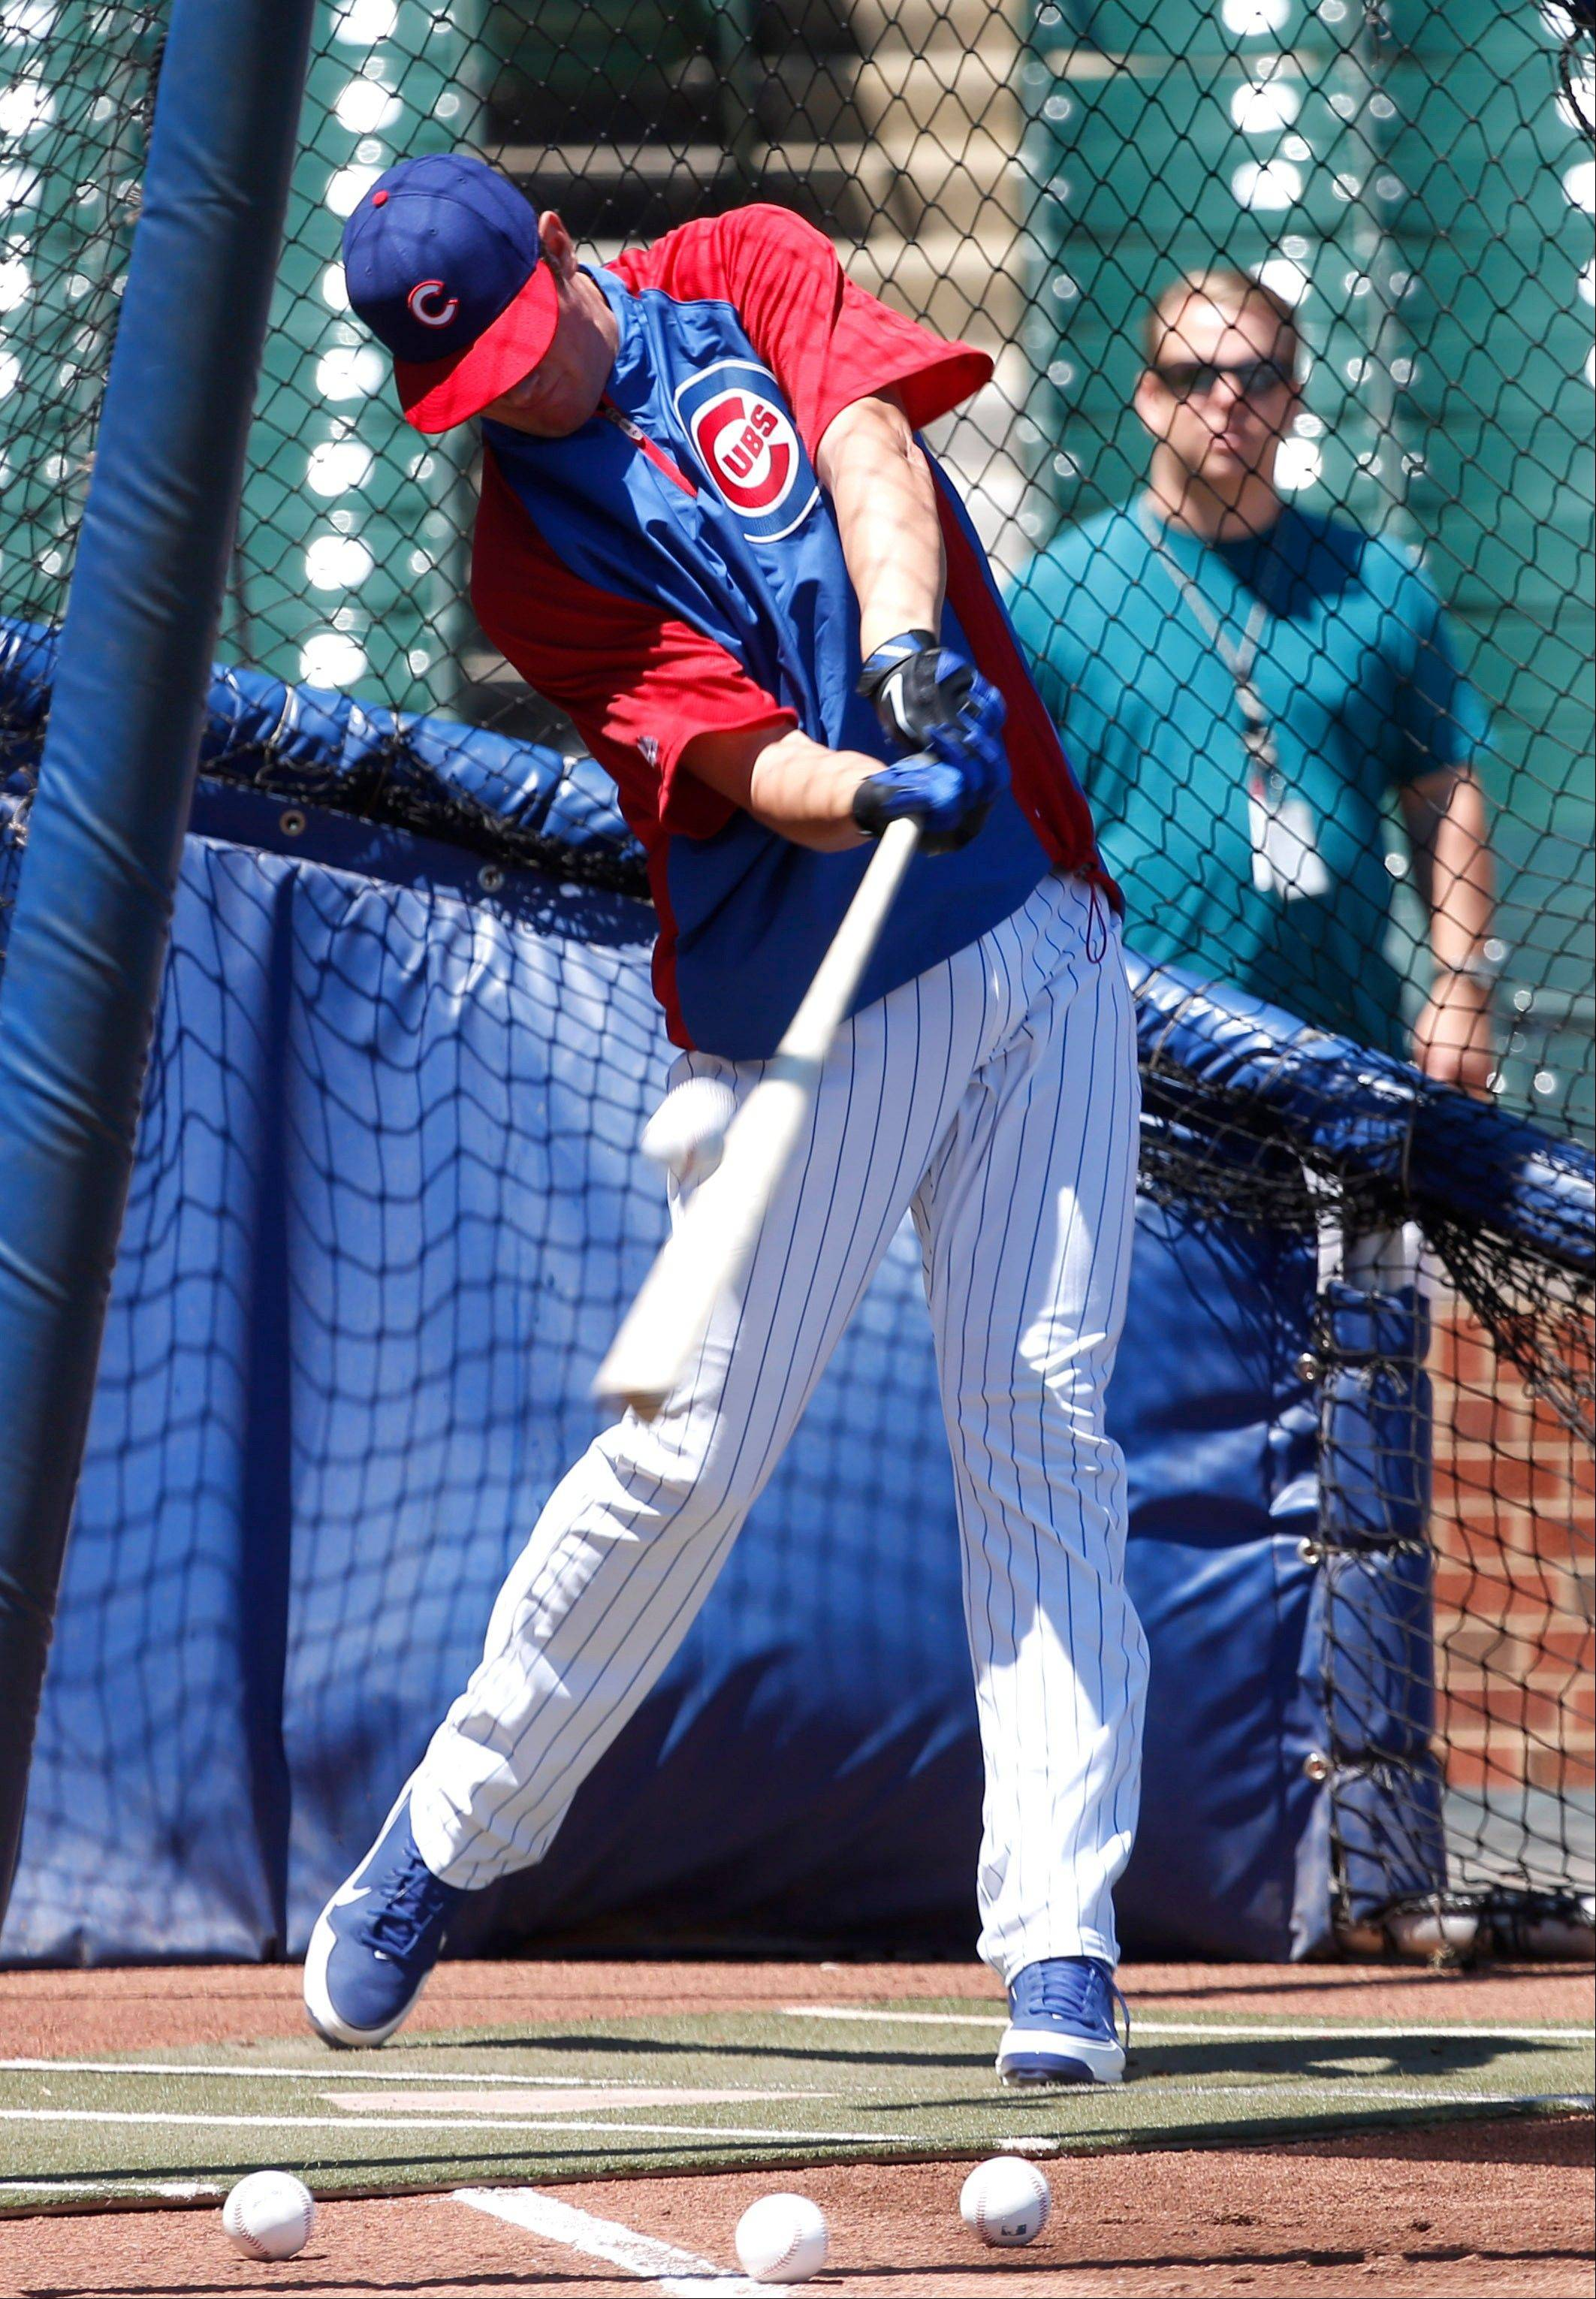 Kris Bryant takes batting practice before the Cubs played St. Louis at Wrigley Field.